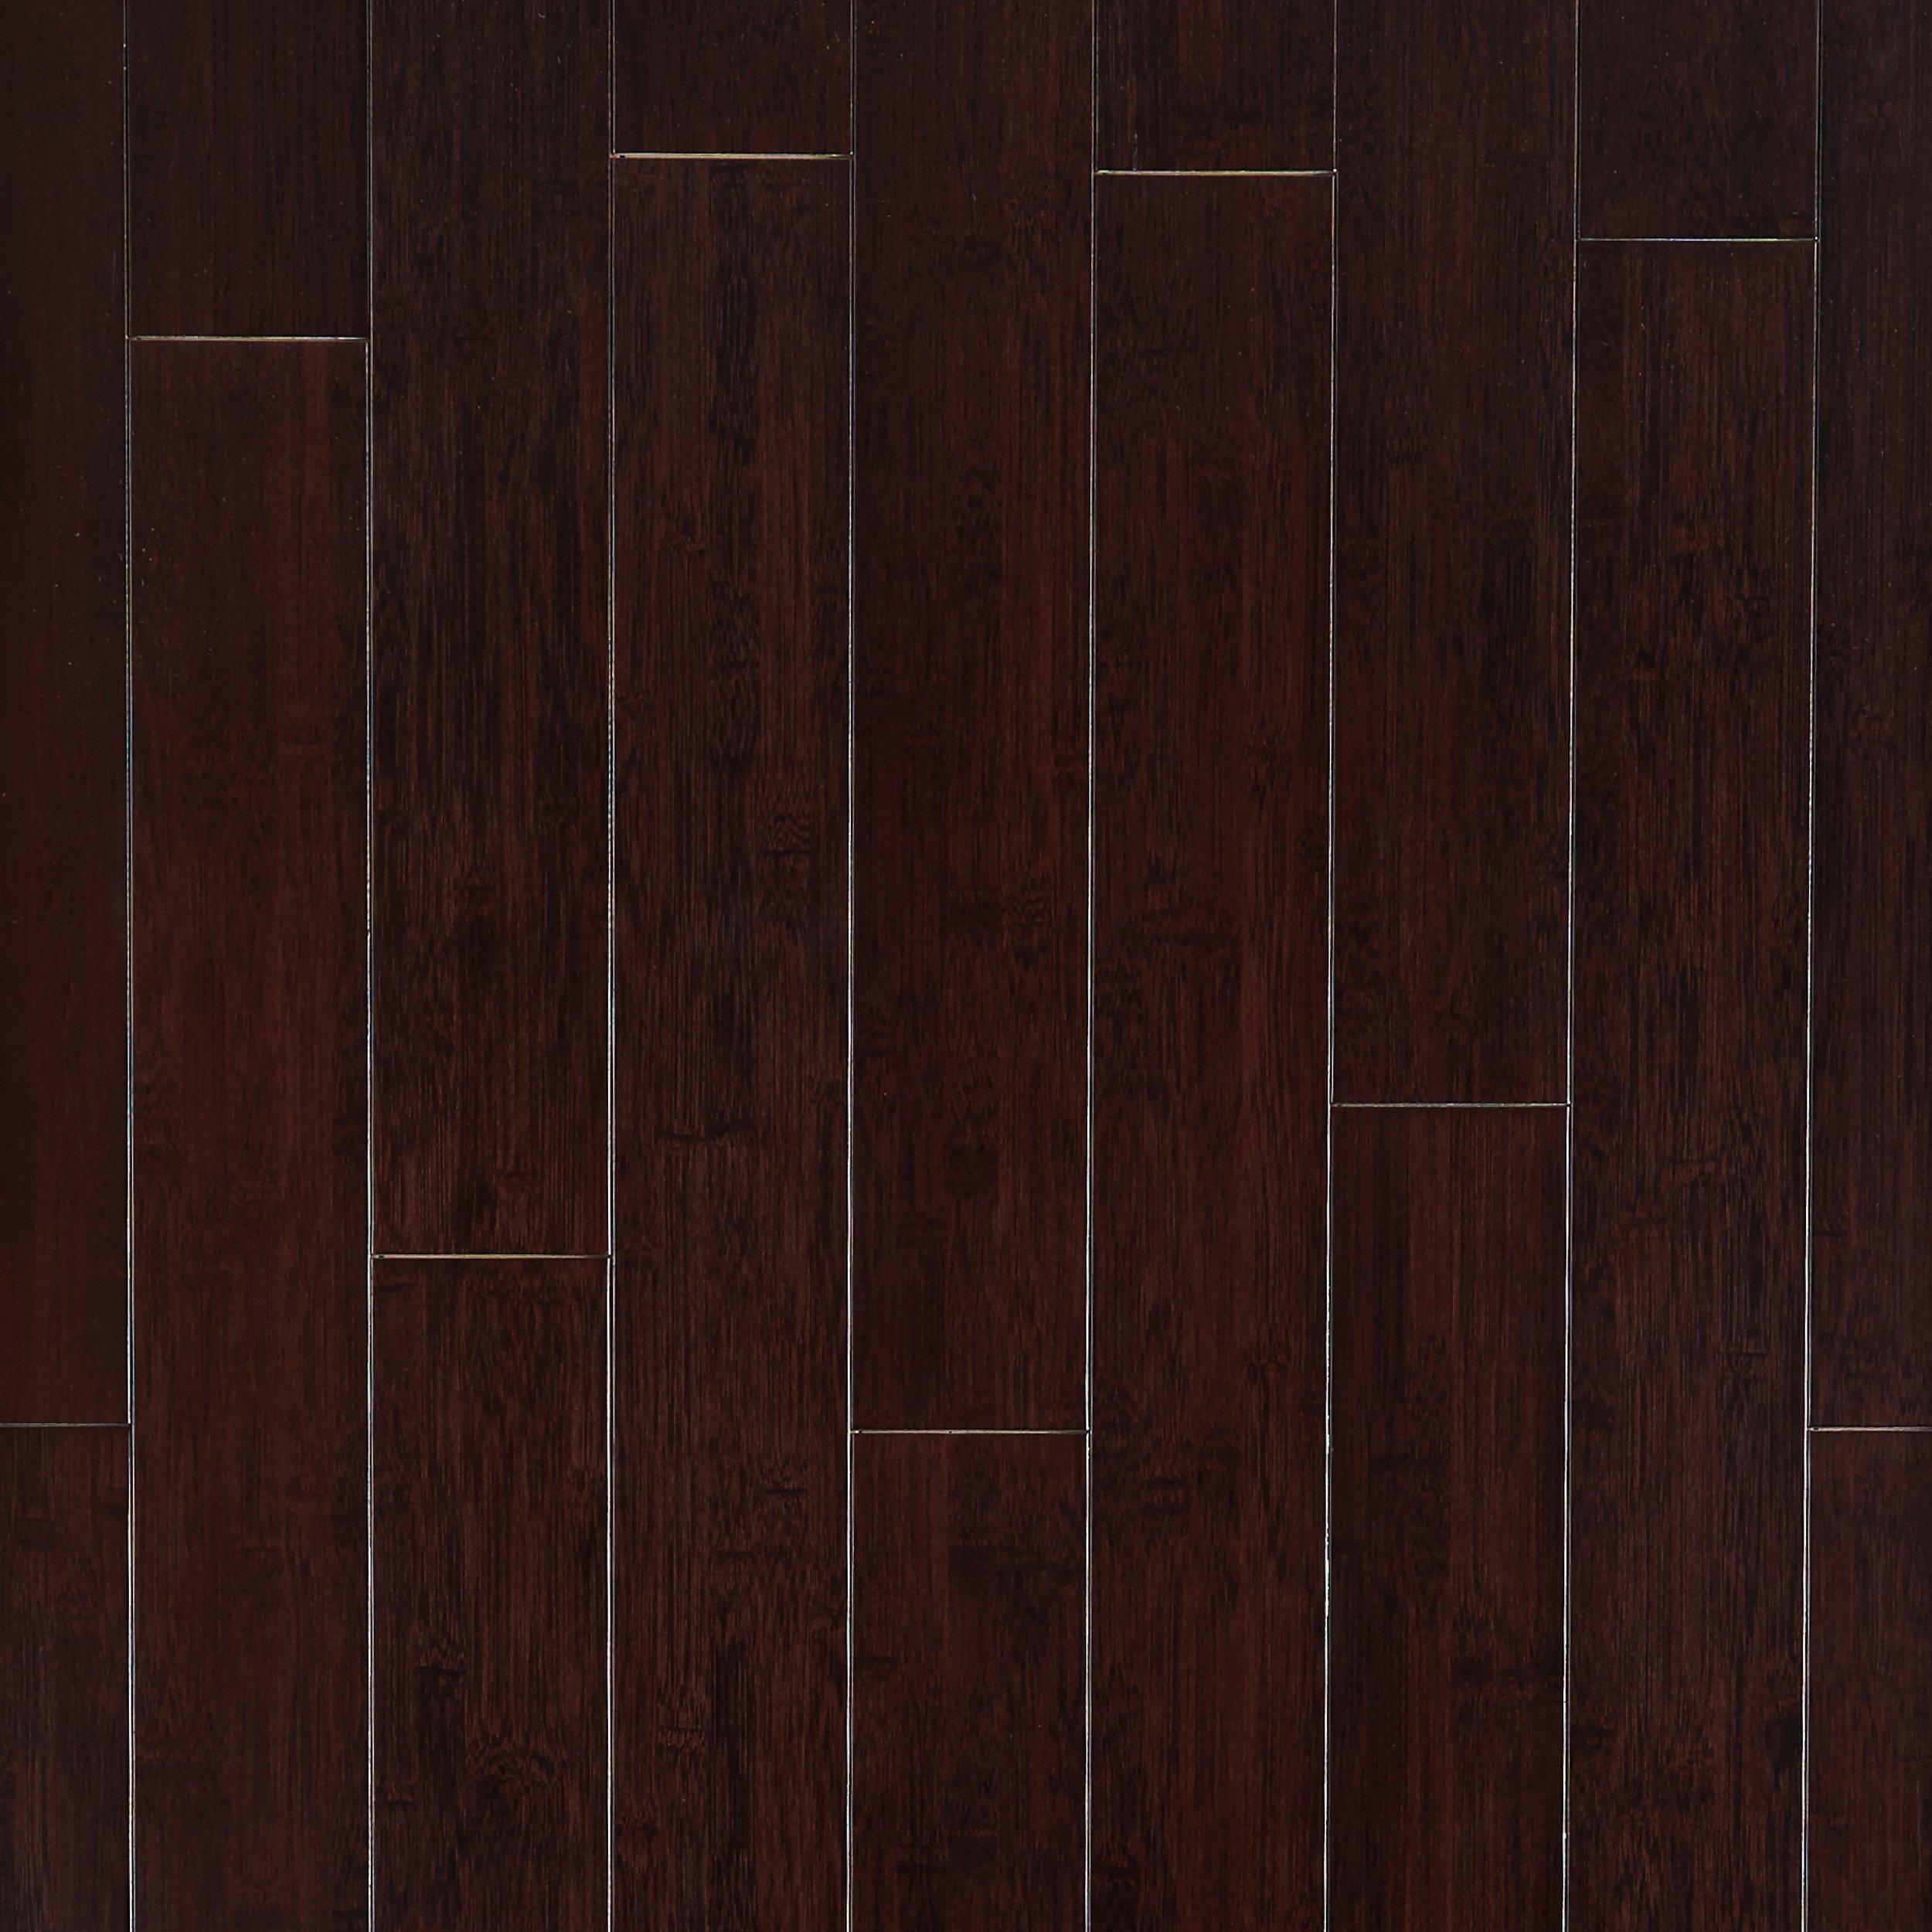 Eco Forest Chestnut Solid Bamboo Floor Decor Bamboo Decor Flooring Floor Decor